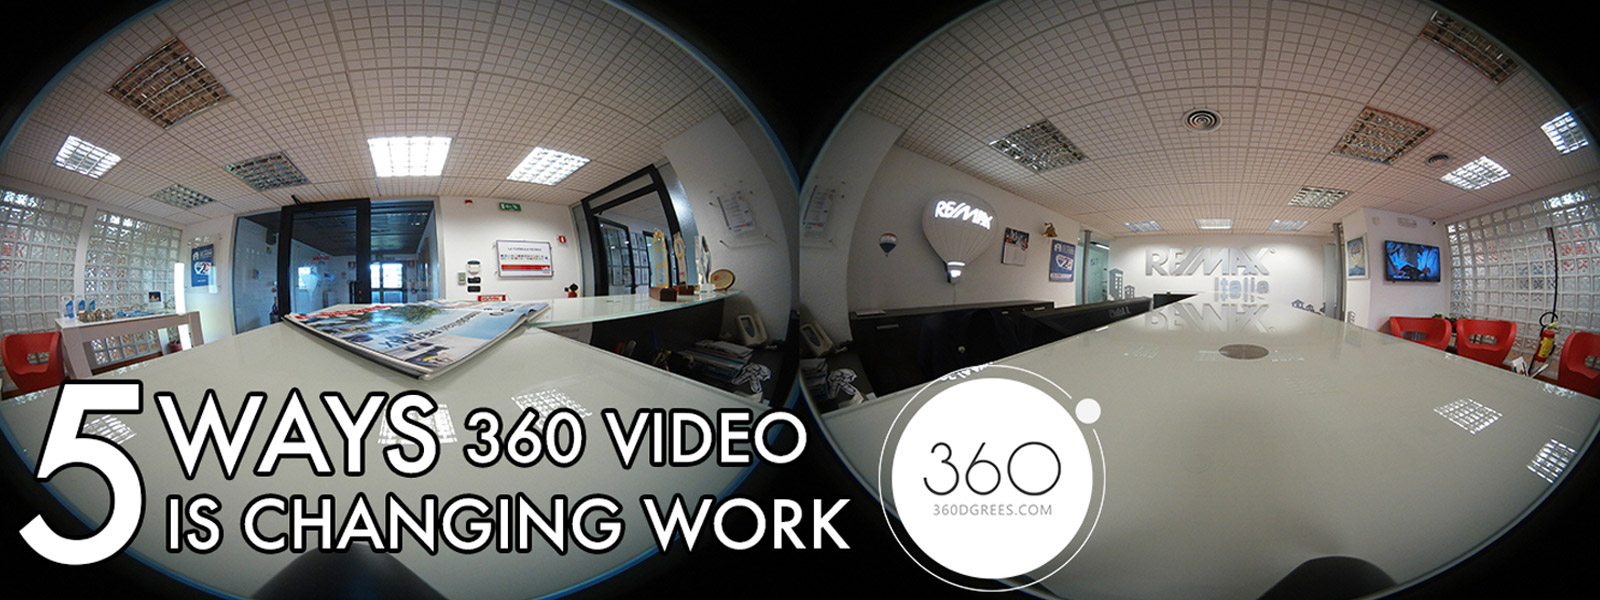 5 ways 360 video is changing work